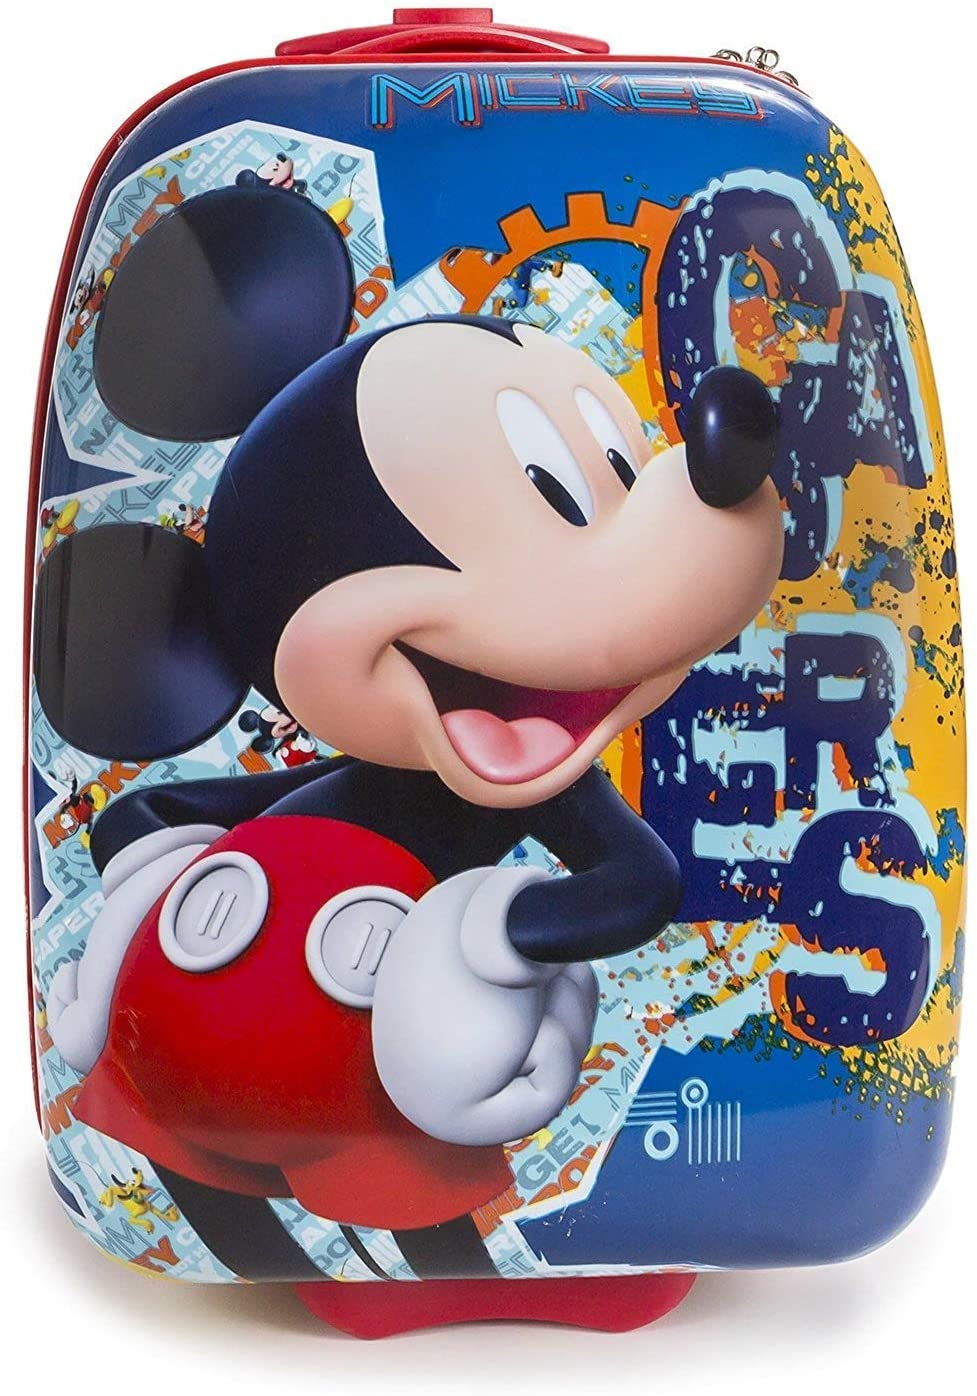 Disney Hard Shell Rolling Luggage with Handle Mickey Mouse 16 Inch